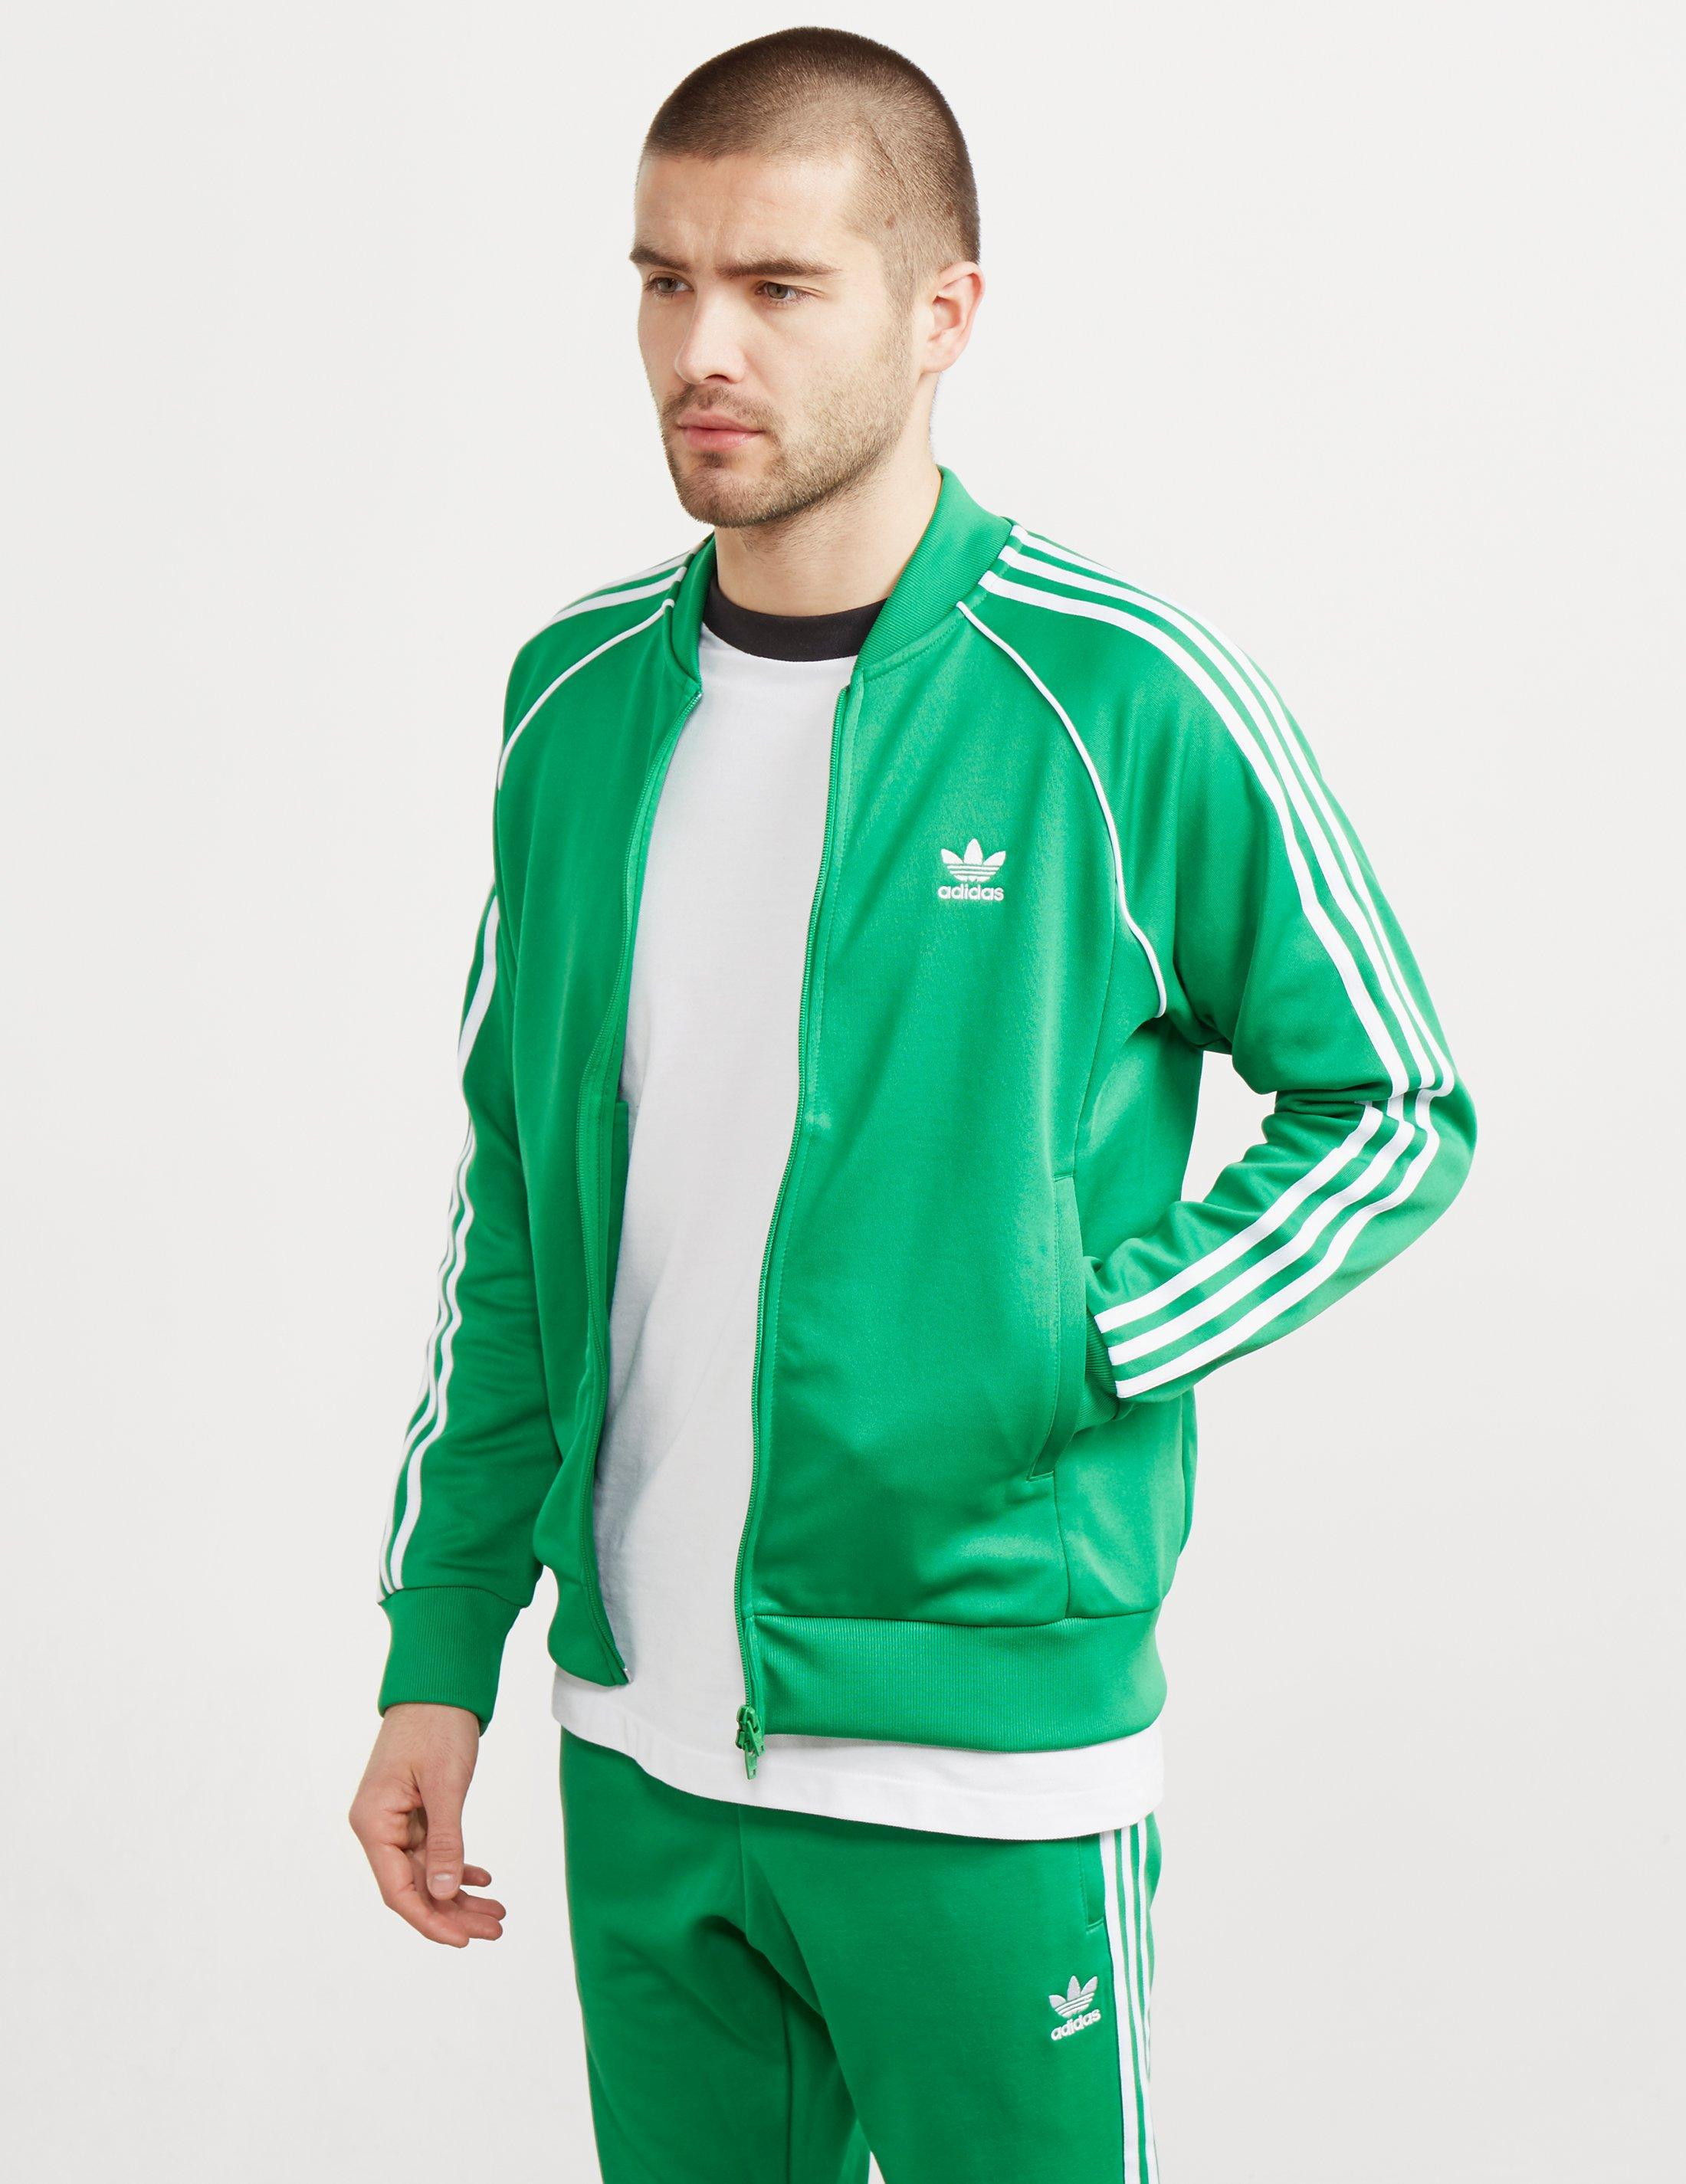 adidas originals zip green